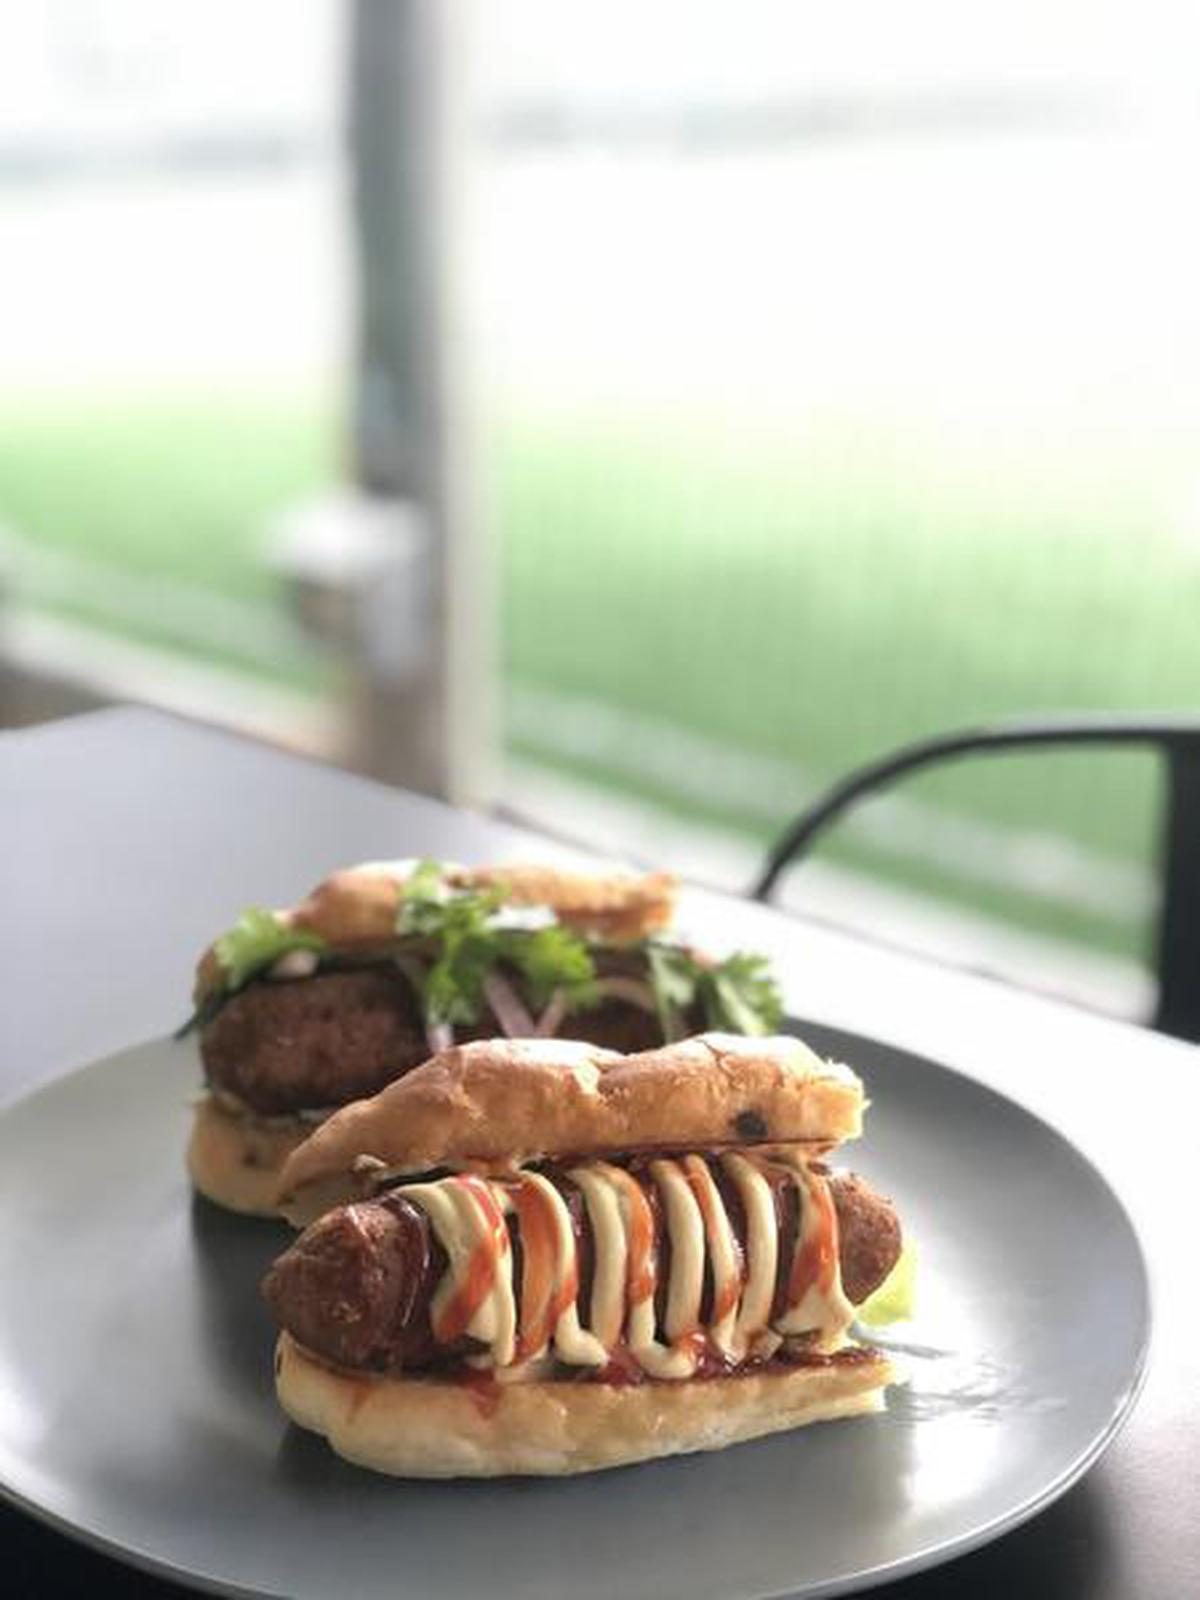 Flipside in Chennai introduces Beyond Meat burgers with planet-friendly, plant-based alternatives